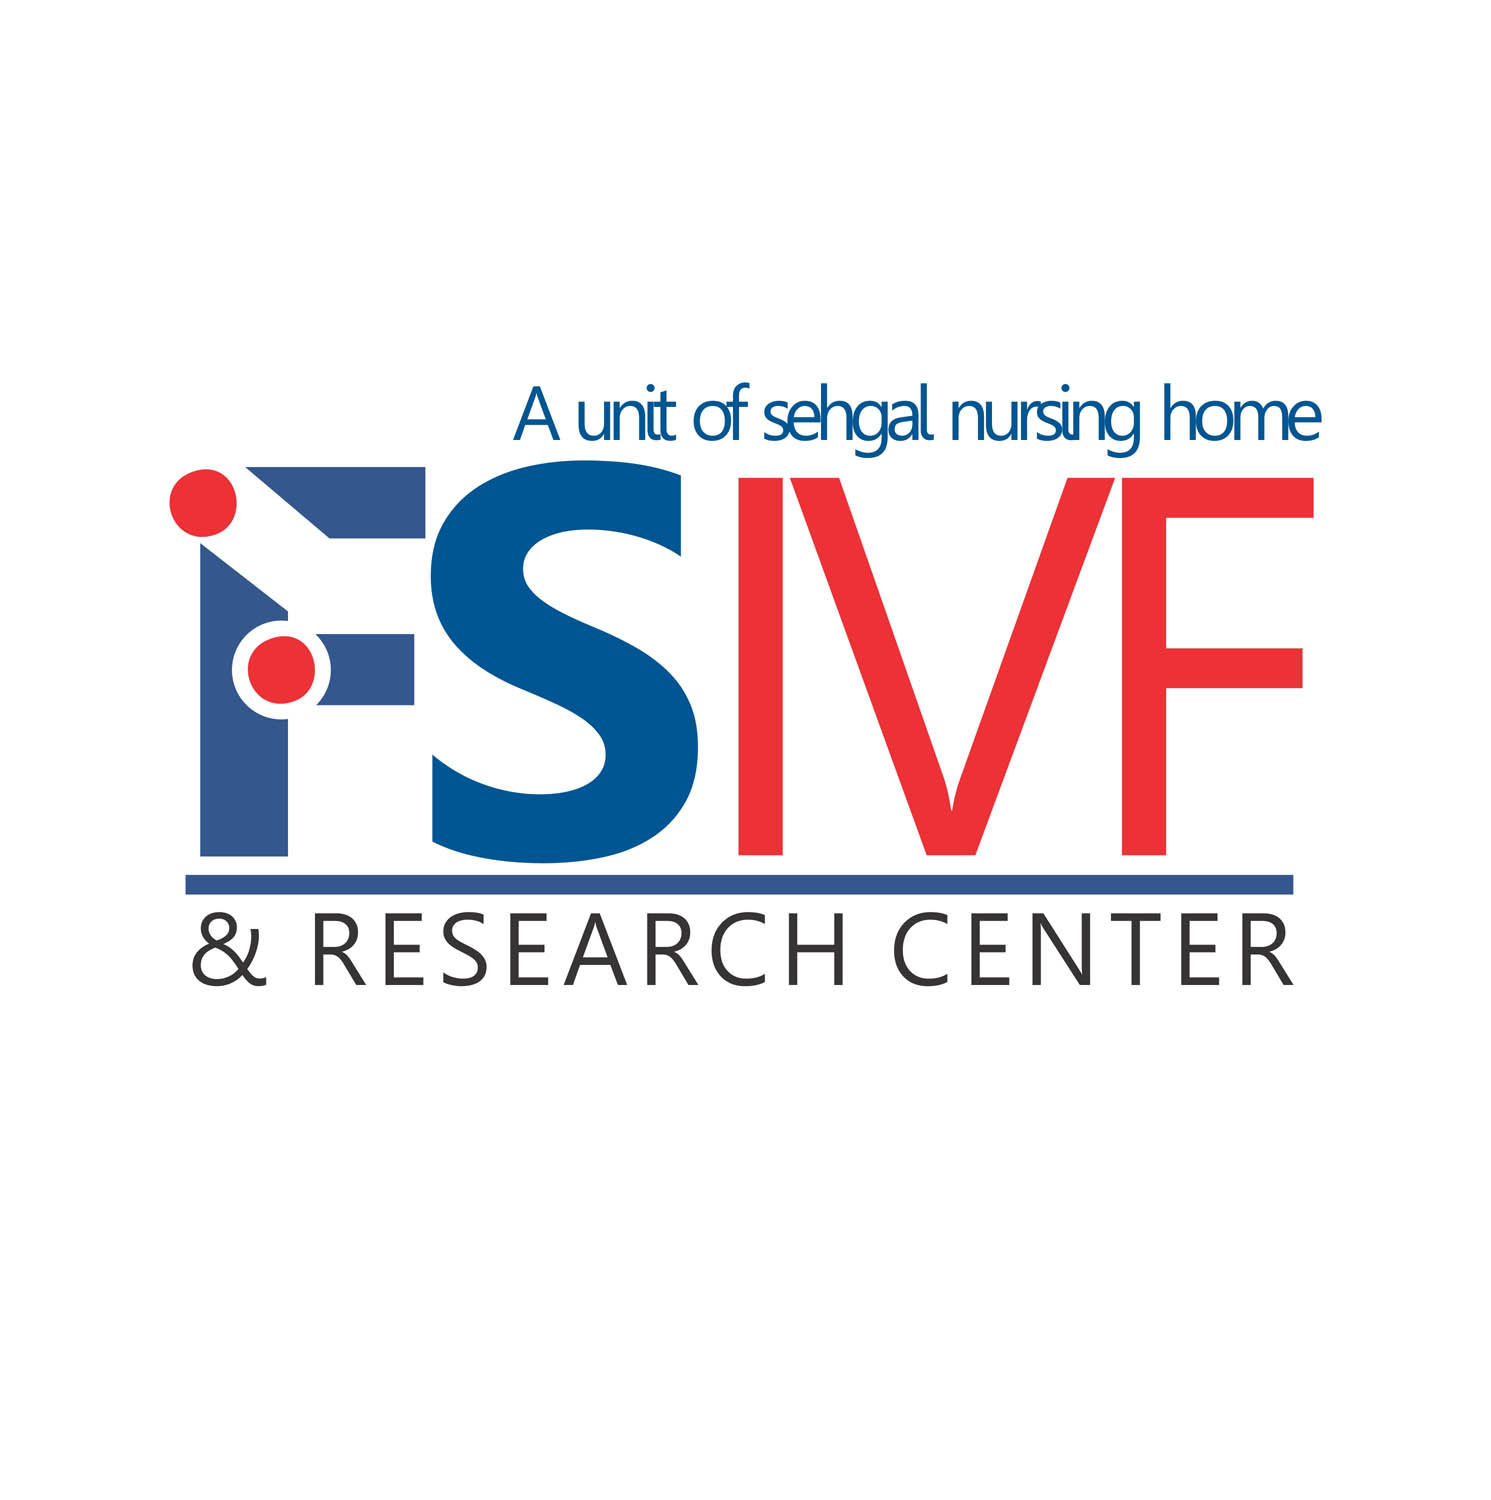 FSIVF & Research Center display image